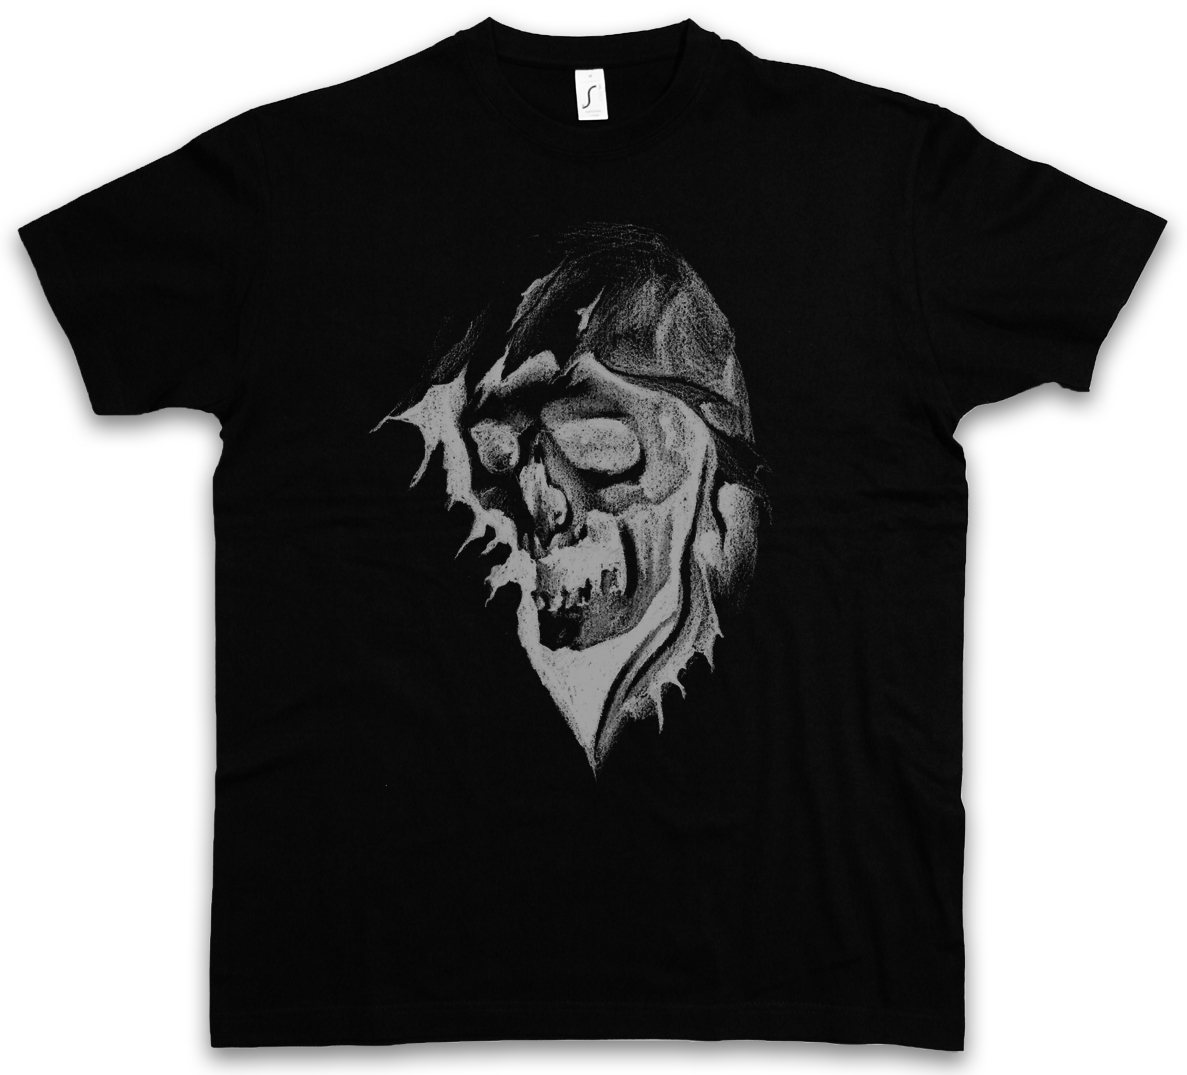 Times Up grim Death scythe skull Funny Graphic T-shirt Adult rock reaper  P629